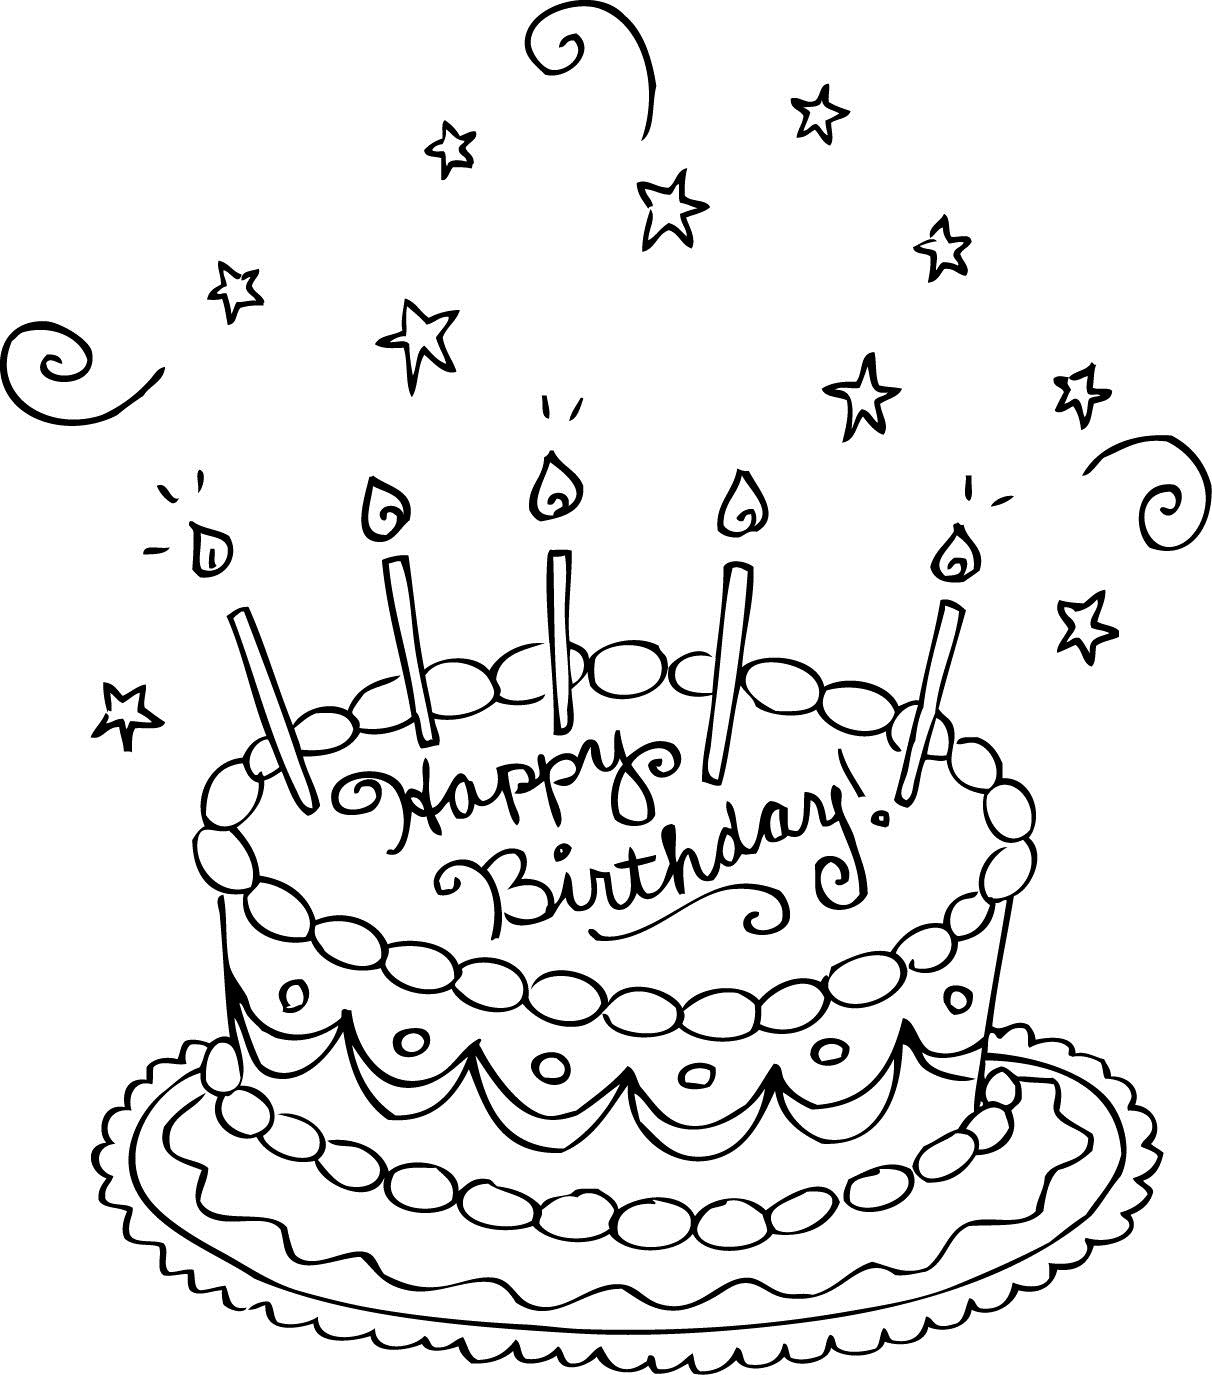 color a birthday cake ; Coloring-Page-Birthday-Cake